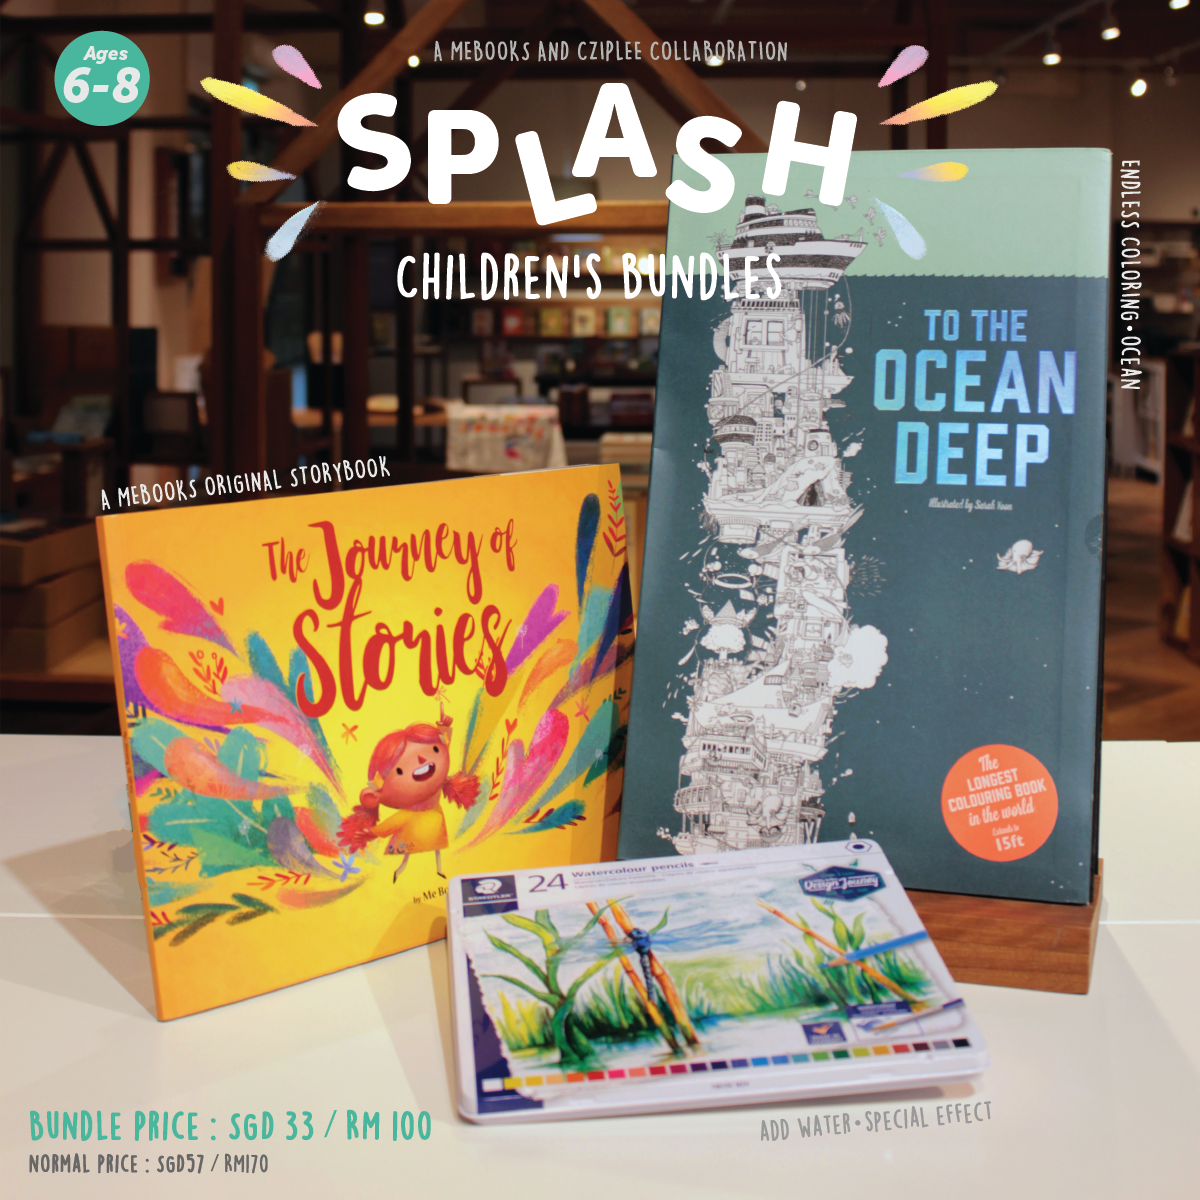 Splash Children's Bundle